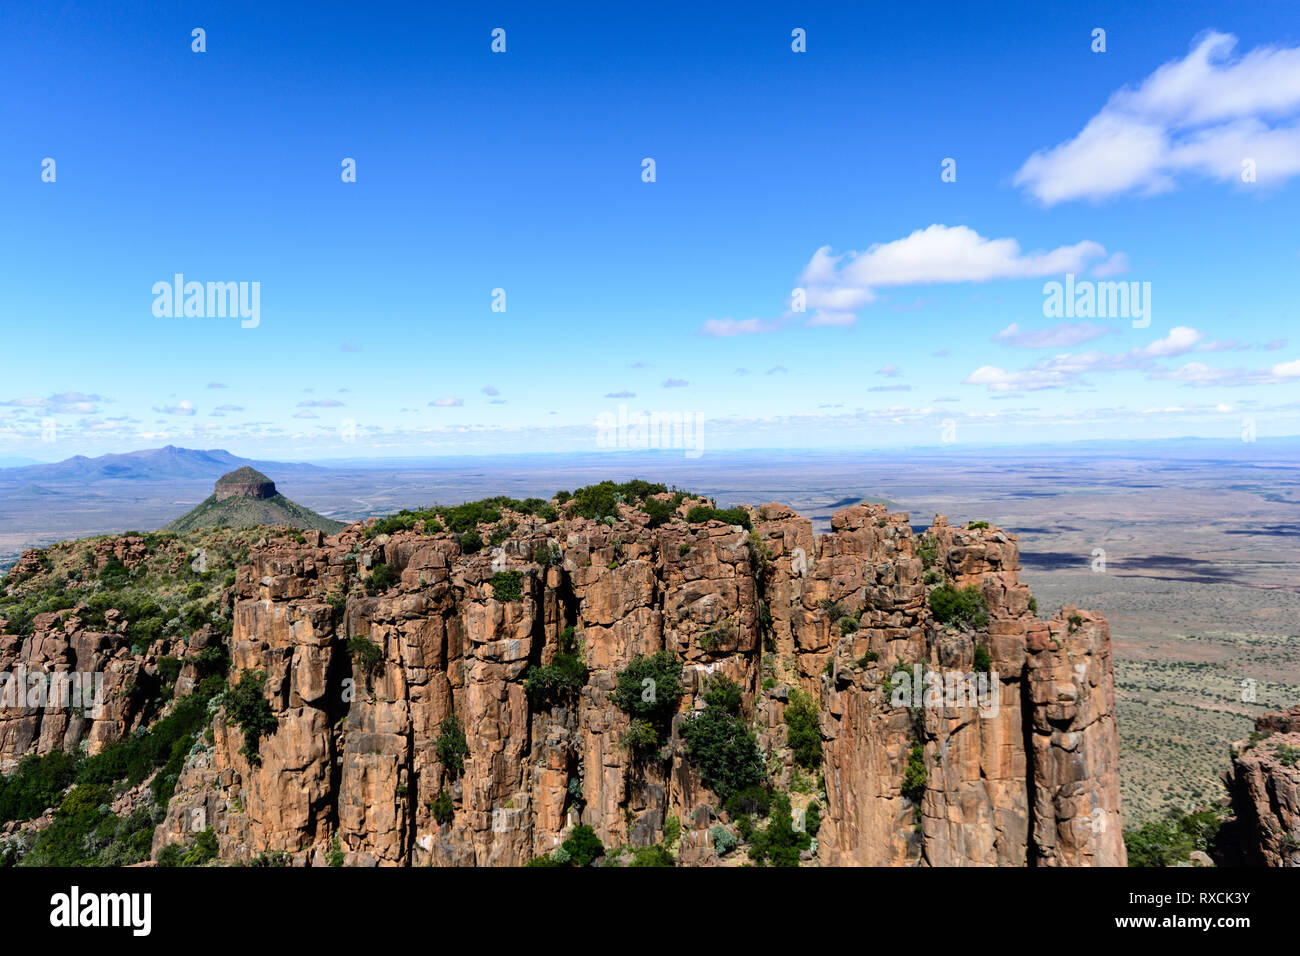 Sunny South Africa Graaff-Reinet,Valley of Desolation, Karoo, Camdeboo, panorama,impressive bizarre rocks under blue sky with some clouds, mountains - Stock Image